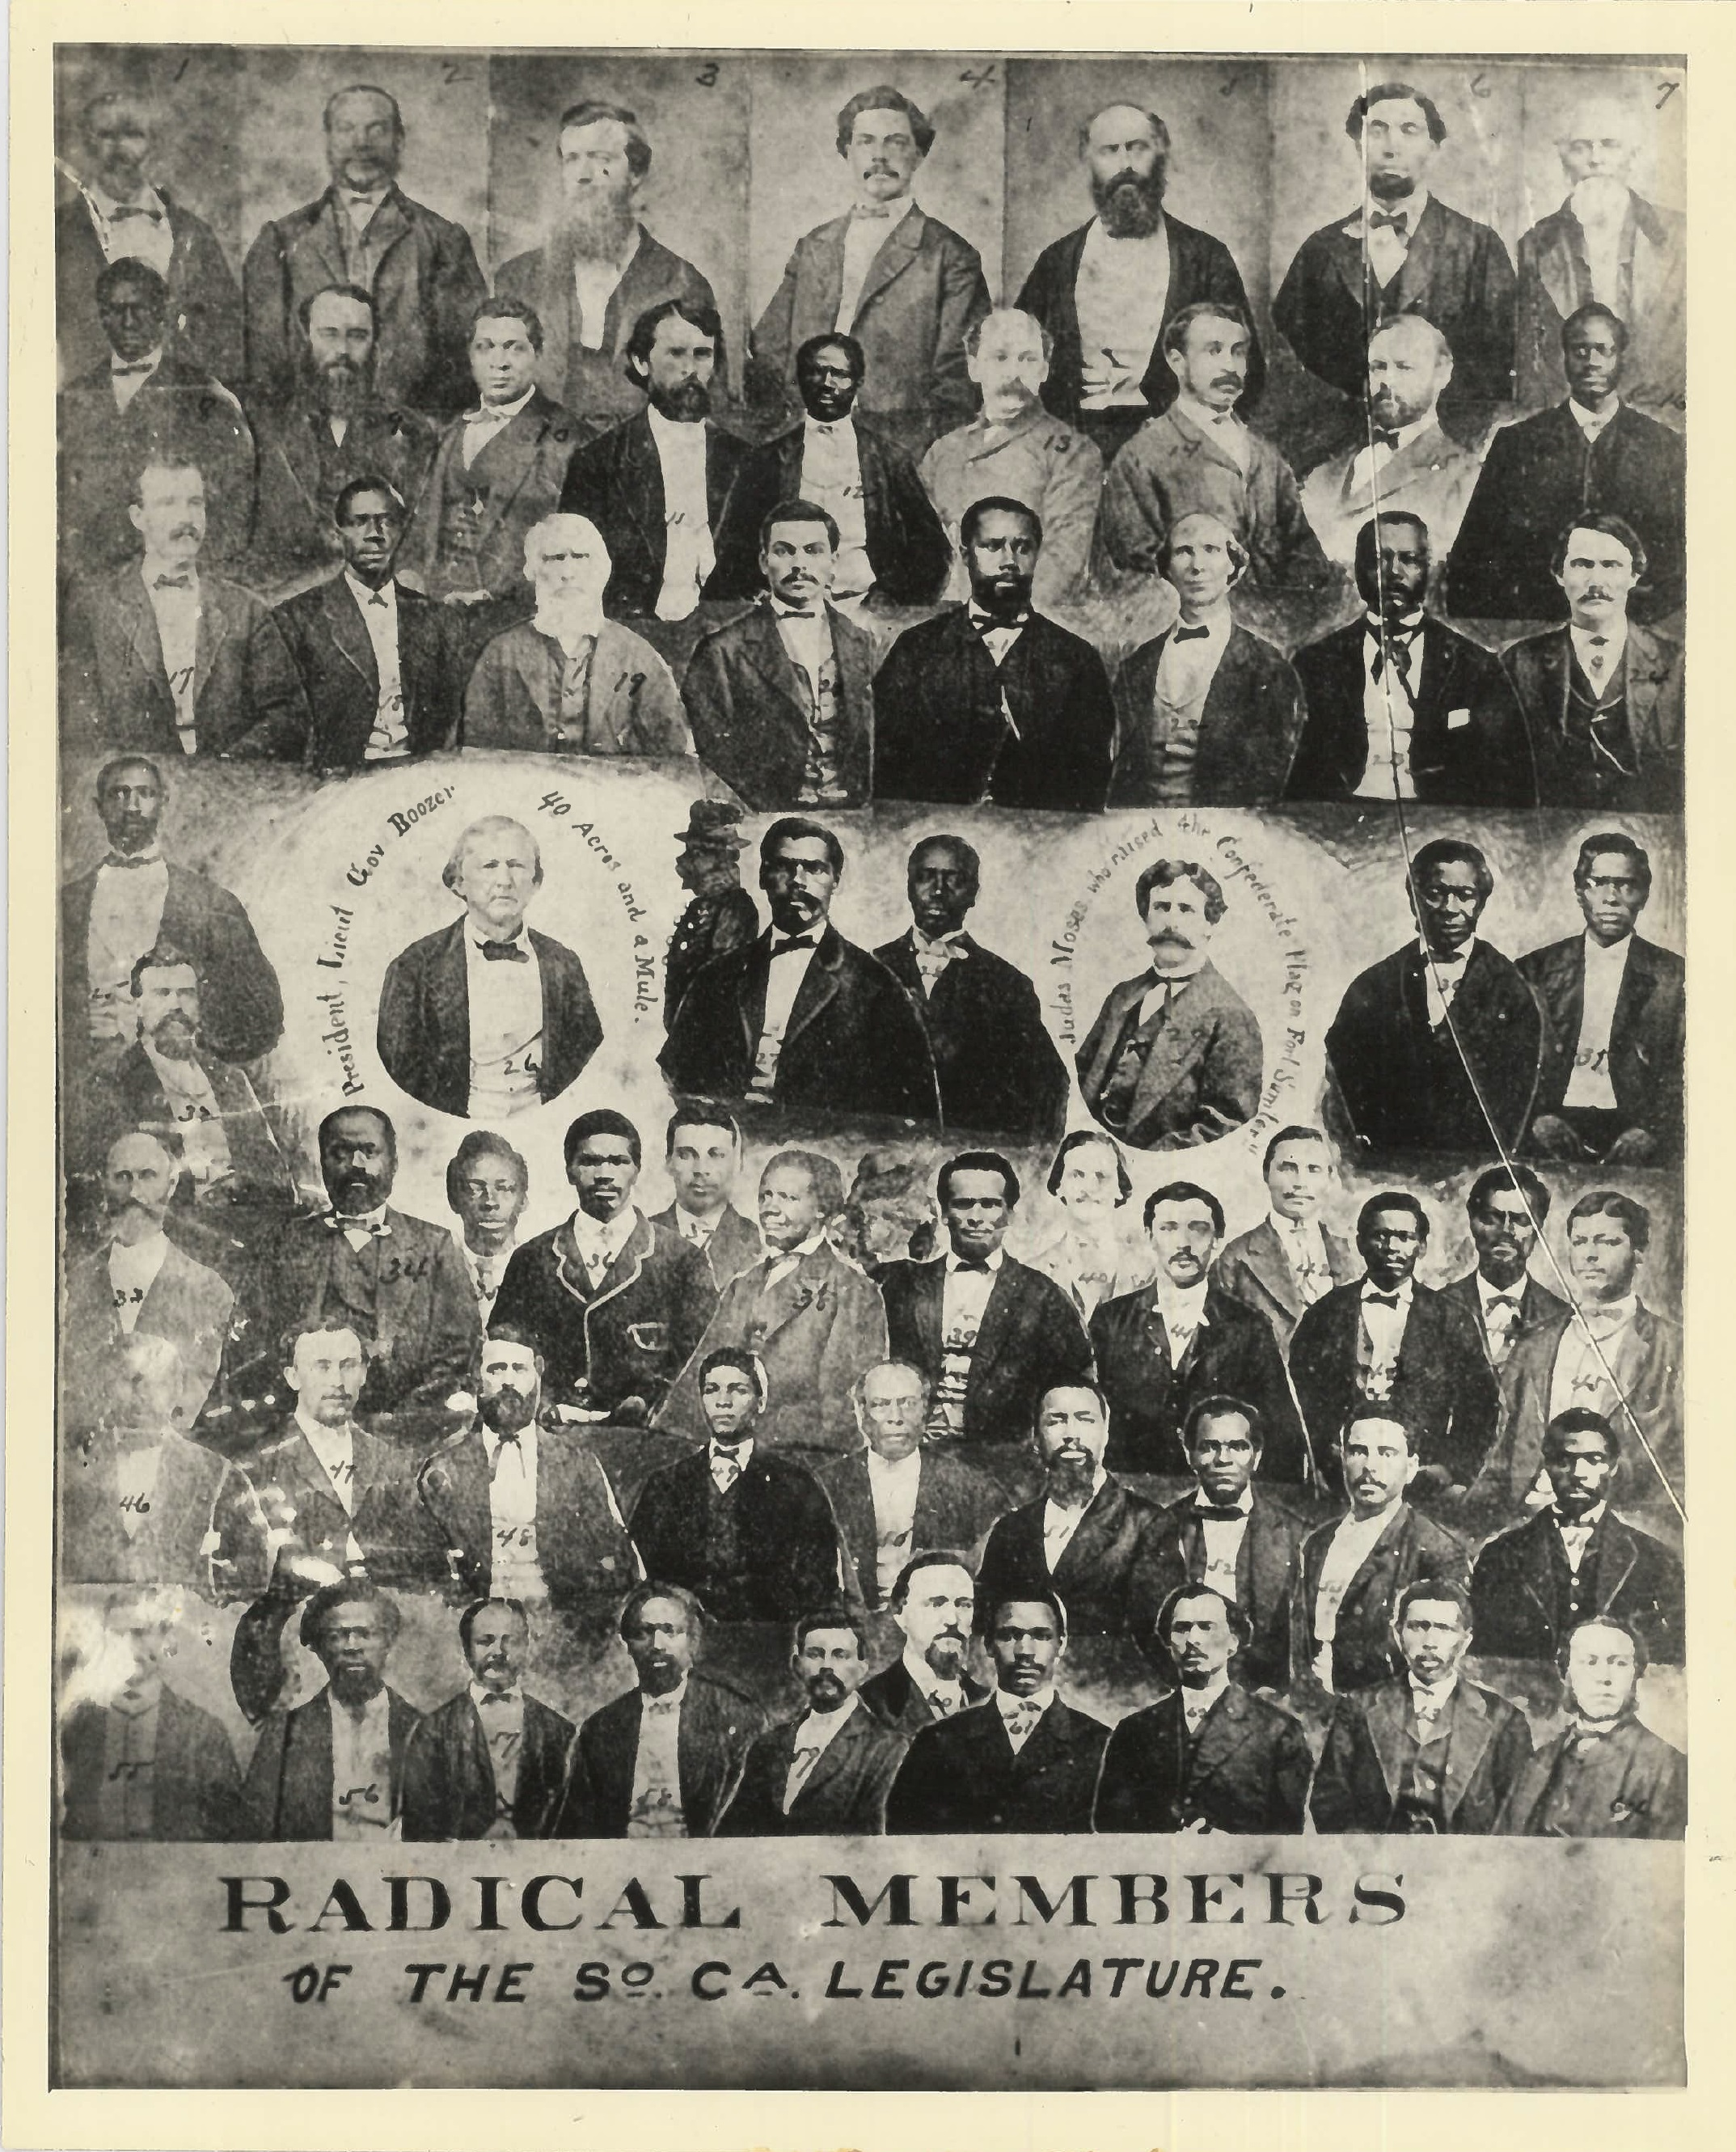 Cain is 3rd row from top and center. - 1868 members of the SC Legislature